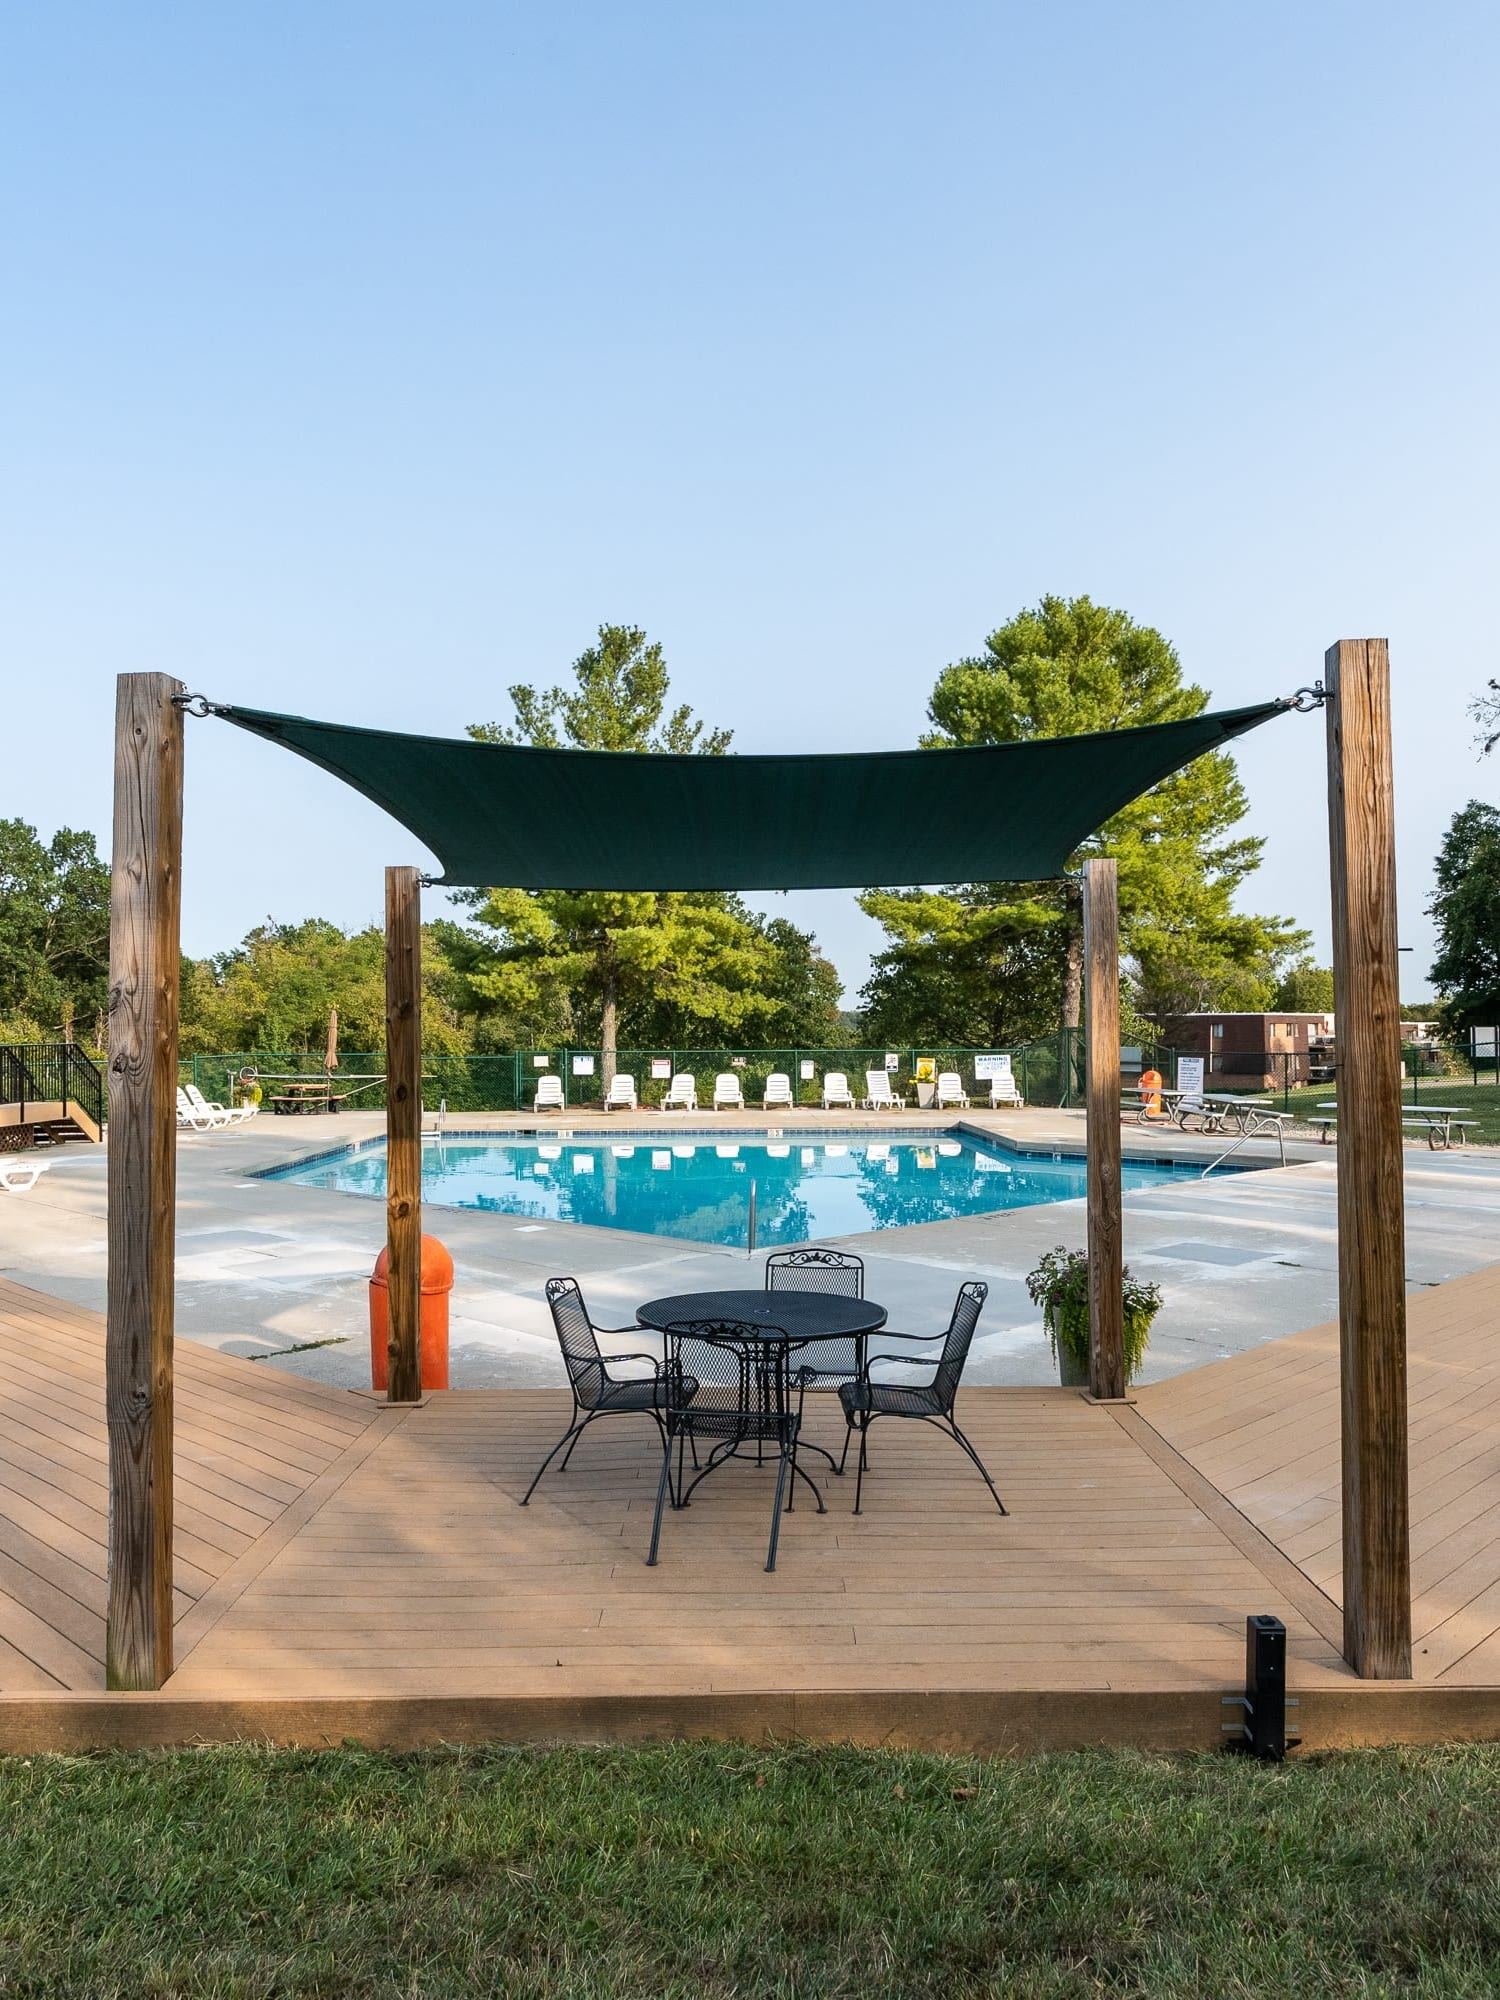 Covered seating for poolside lunches at Miamiview Apartments in Cleves, Ohio